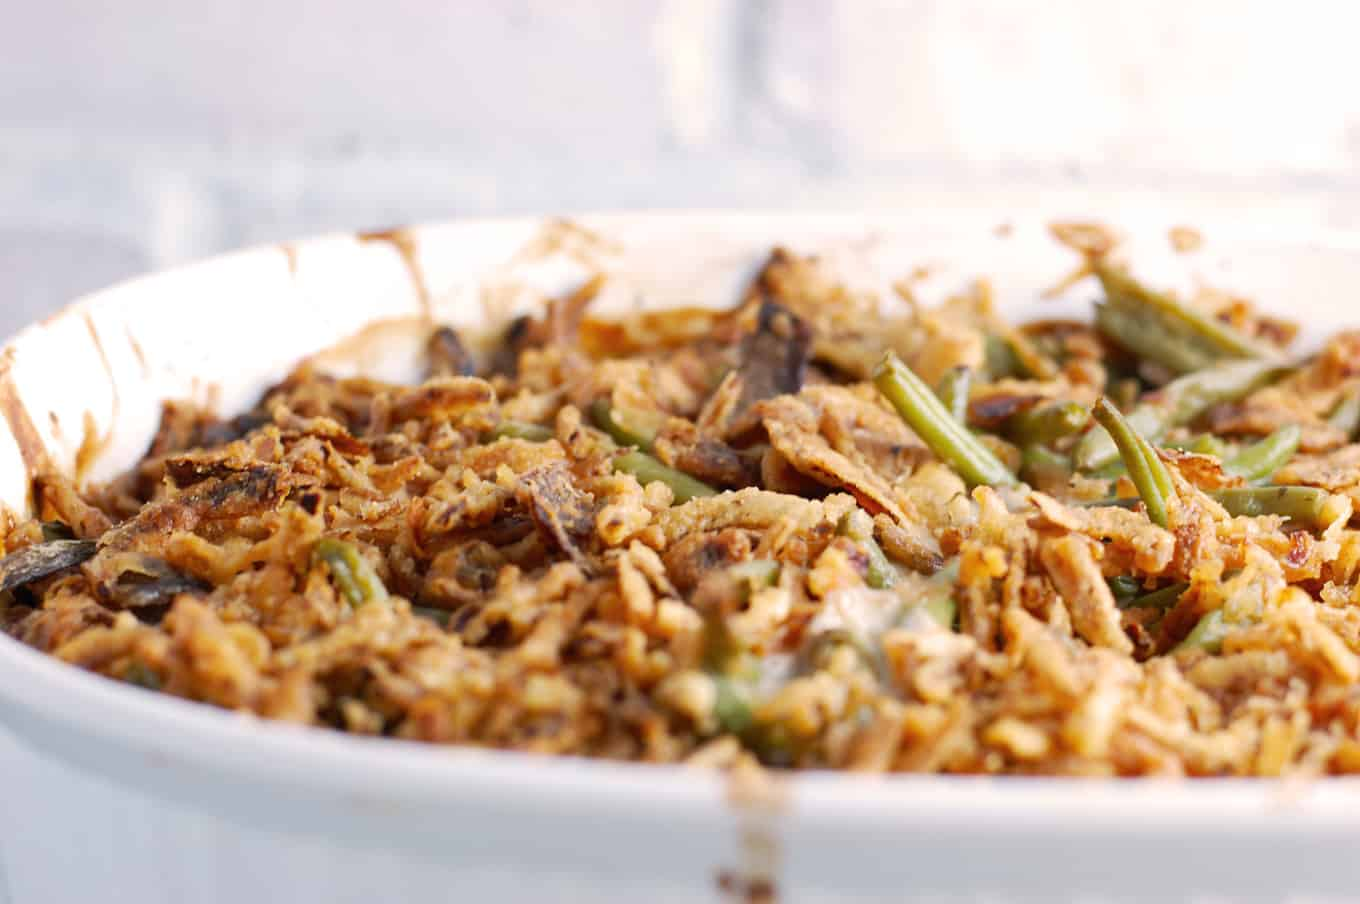 Vegan green bean casserole. Green beans tossed with sauteed mushrooms, onions, and vegan mushroom gravy. Topped with french fried onions and baked in the oven until crispy. Perfect sidedish for a vegan Thanksgiving.